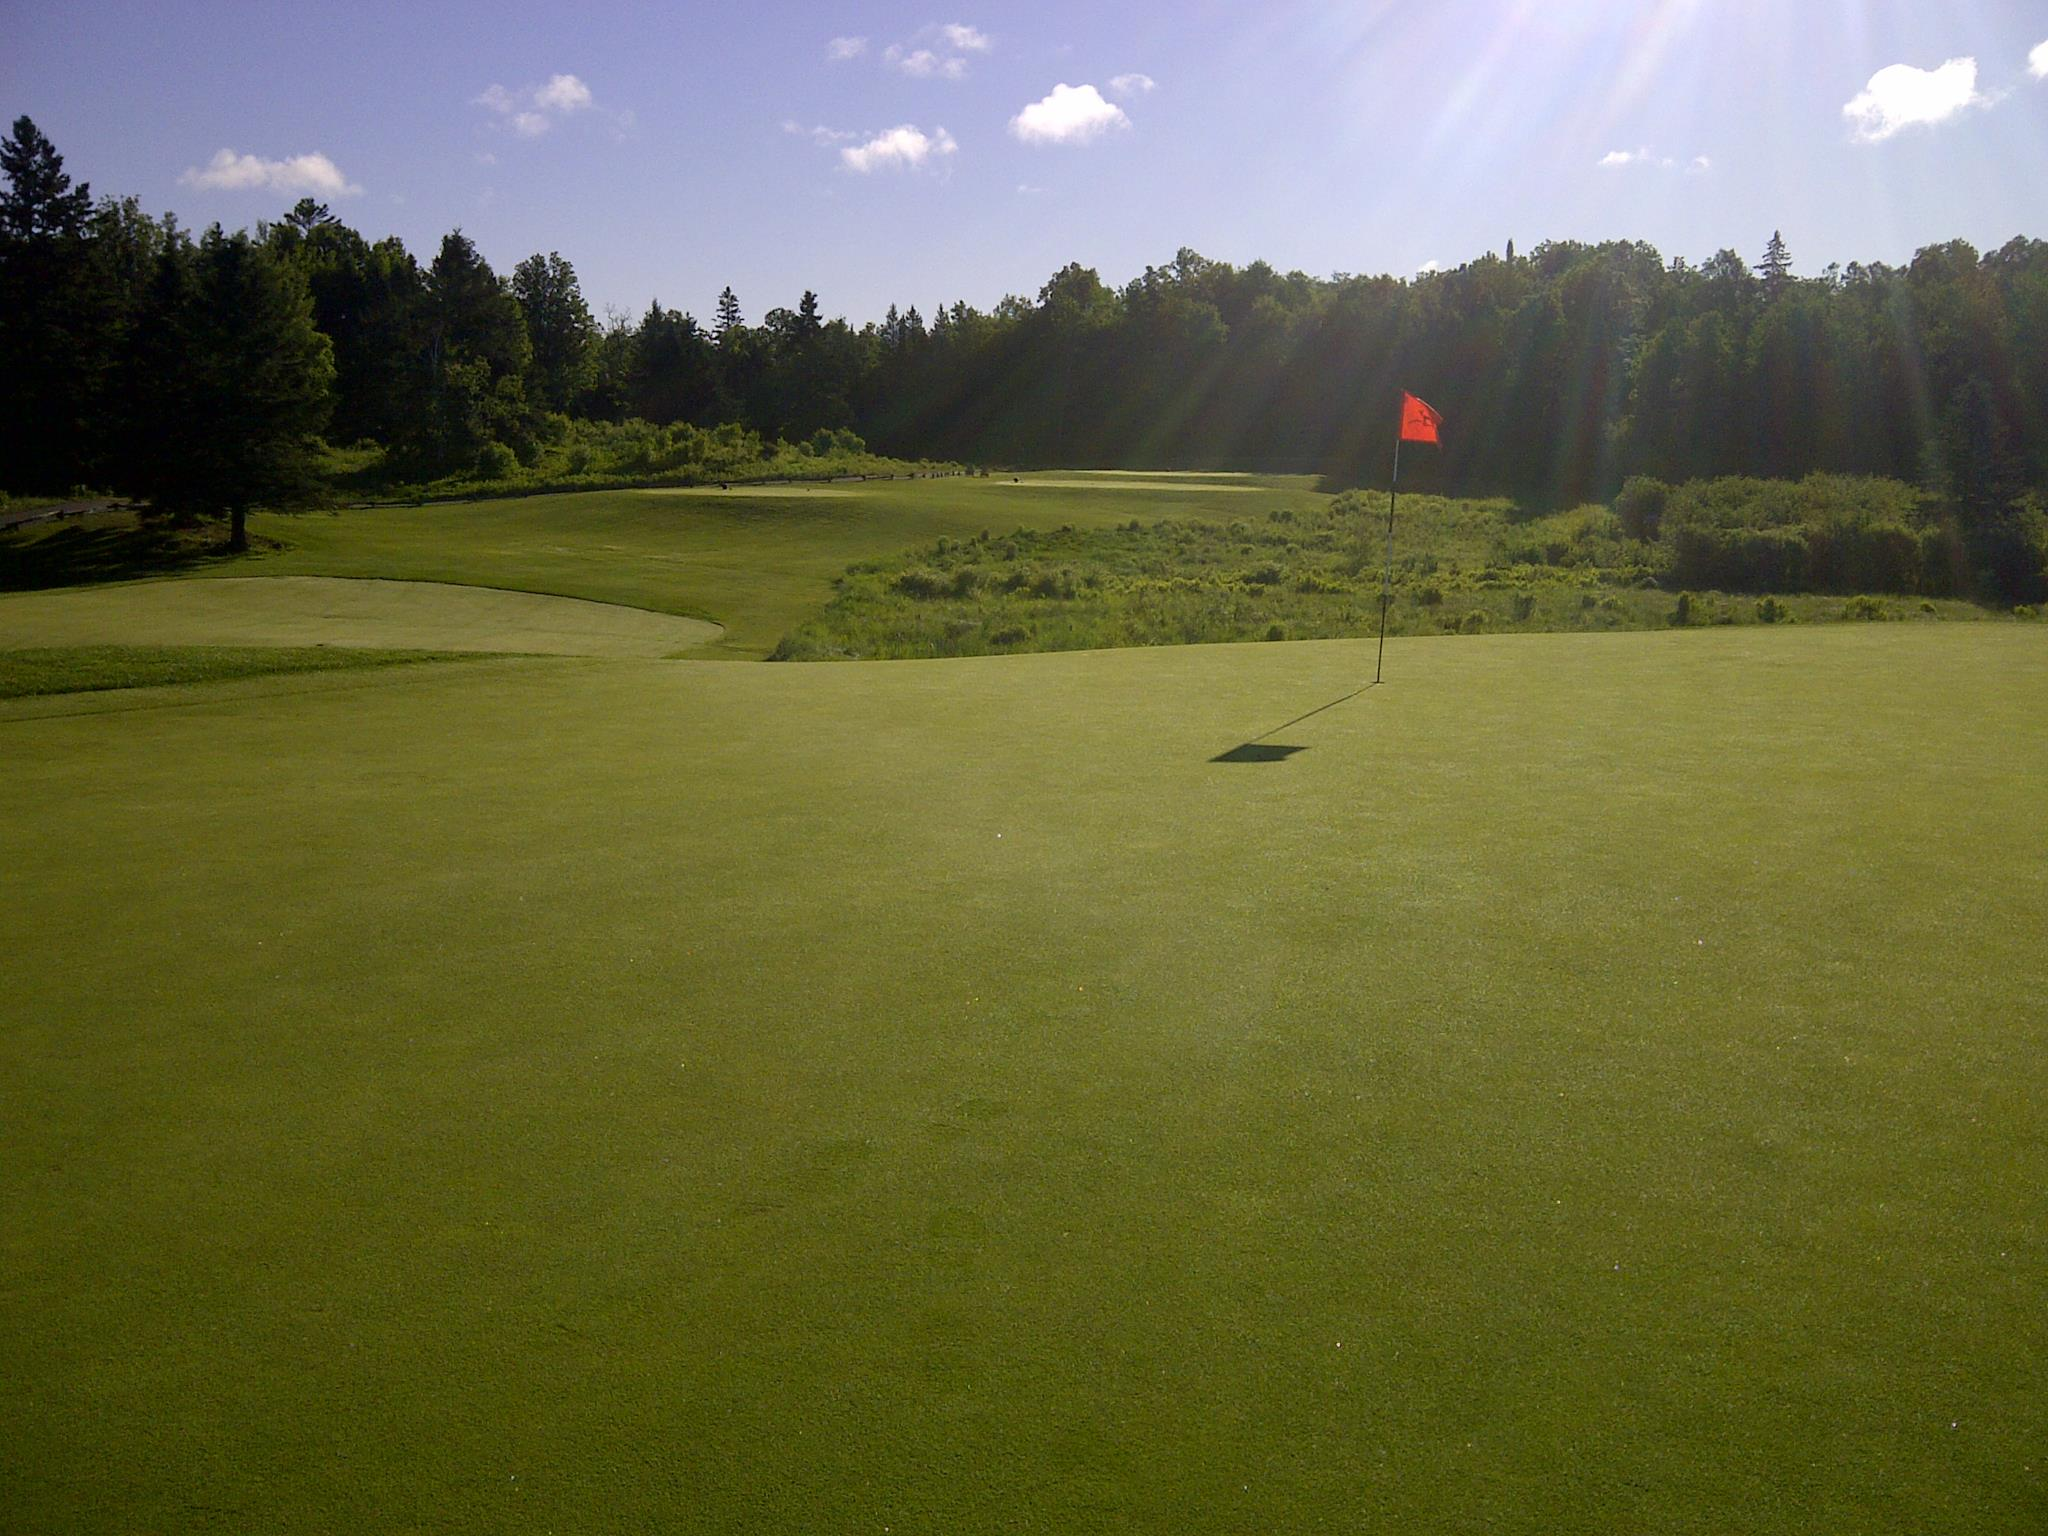 Overview of golf course named The Ridge at Manitou Golf Club